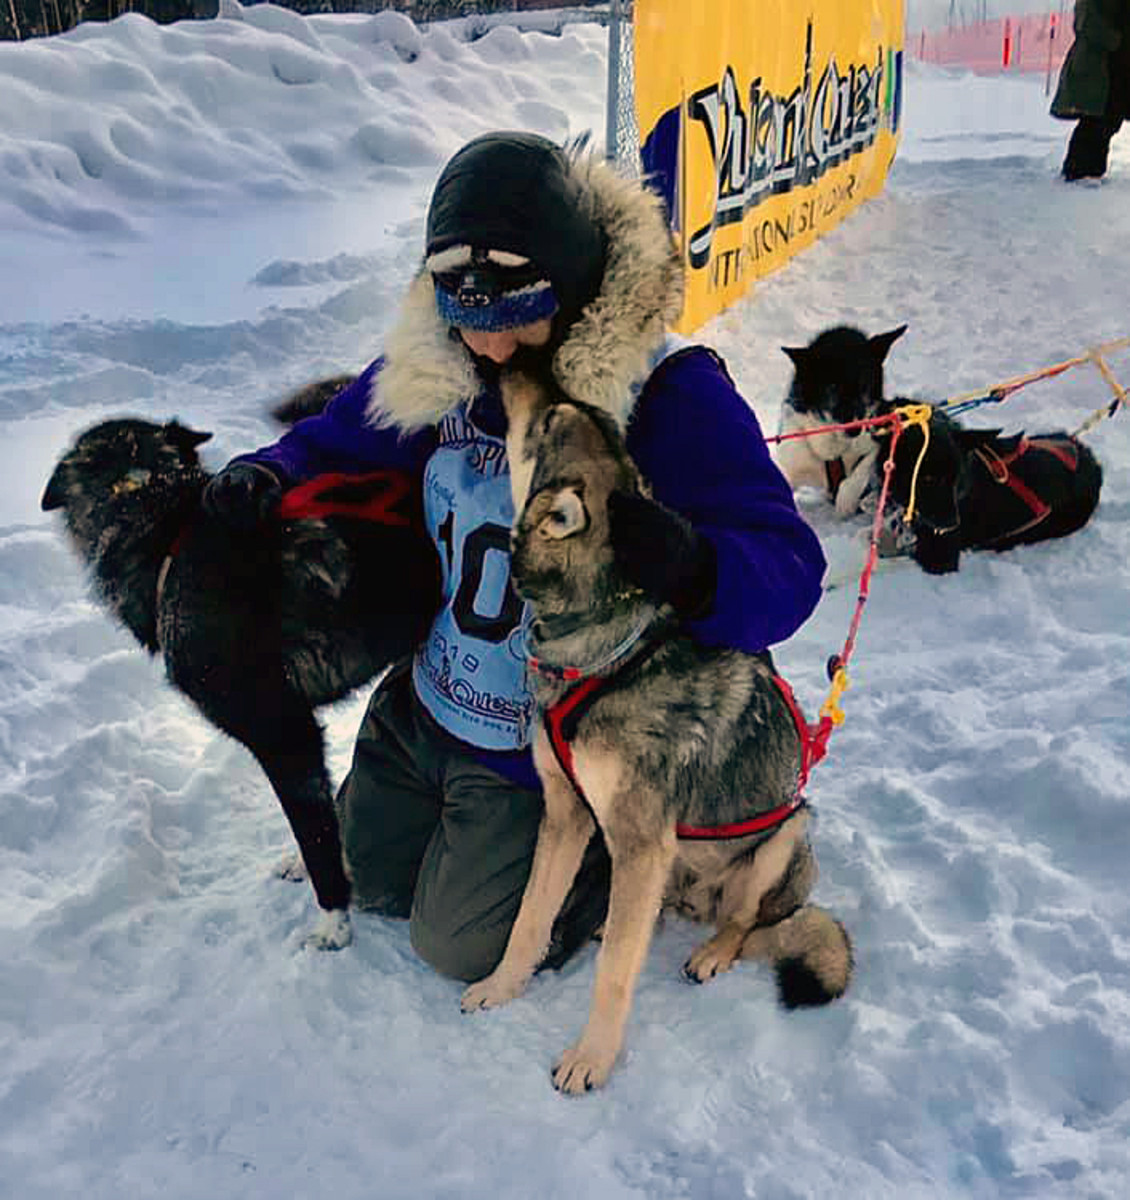 Martin Apayauk Reitan and his team celebrate Feb. 13 after crossing the finish line in the Yukon Quest. Reitan finished 14th and won Rookie of the Year honors. Reitan is a rookie to watch in the upcoming Iditarod Trail Sled Dog Race, which begins March 2 in Anchorage. (Courtesy of Ketil Reitan)